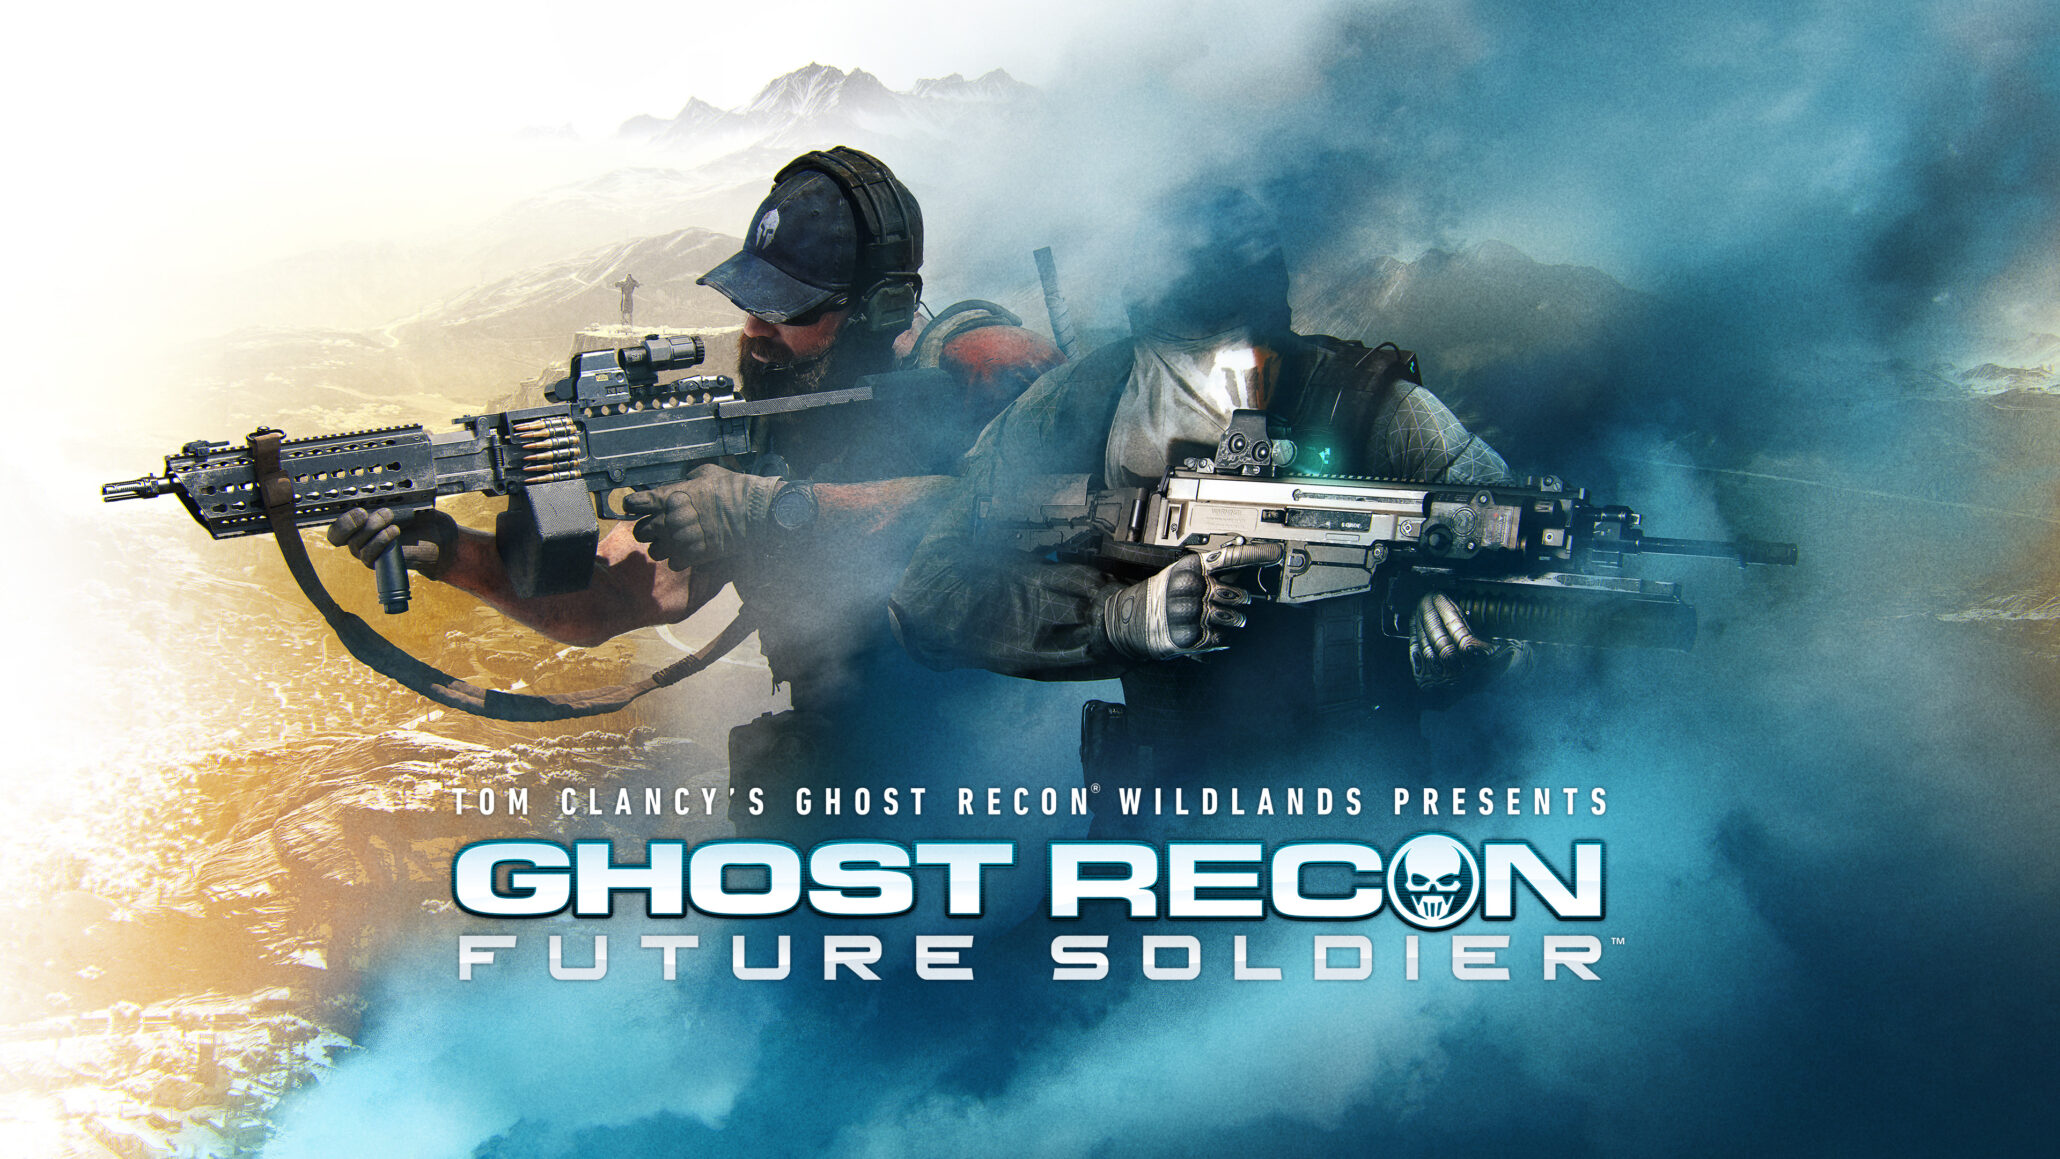 Ghost Recon Wildlands to Get Free Special Mission Inspired by Future Soldier